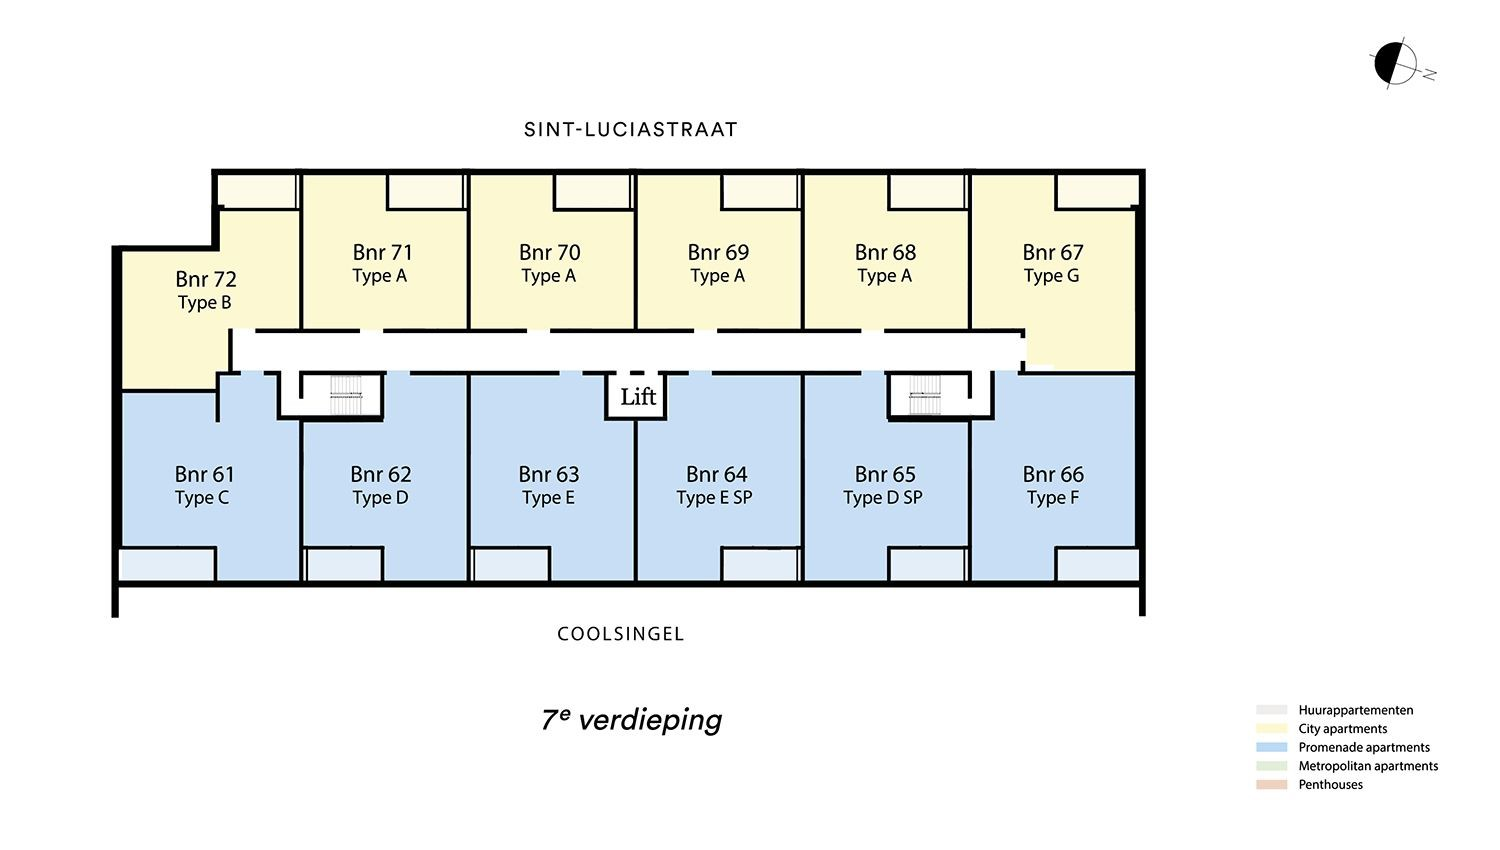 Floor plan verdieping 7 Type G - City apartment N� 75 coolsingel